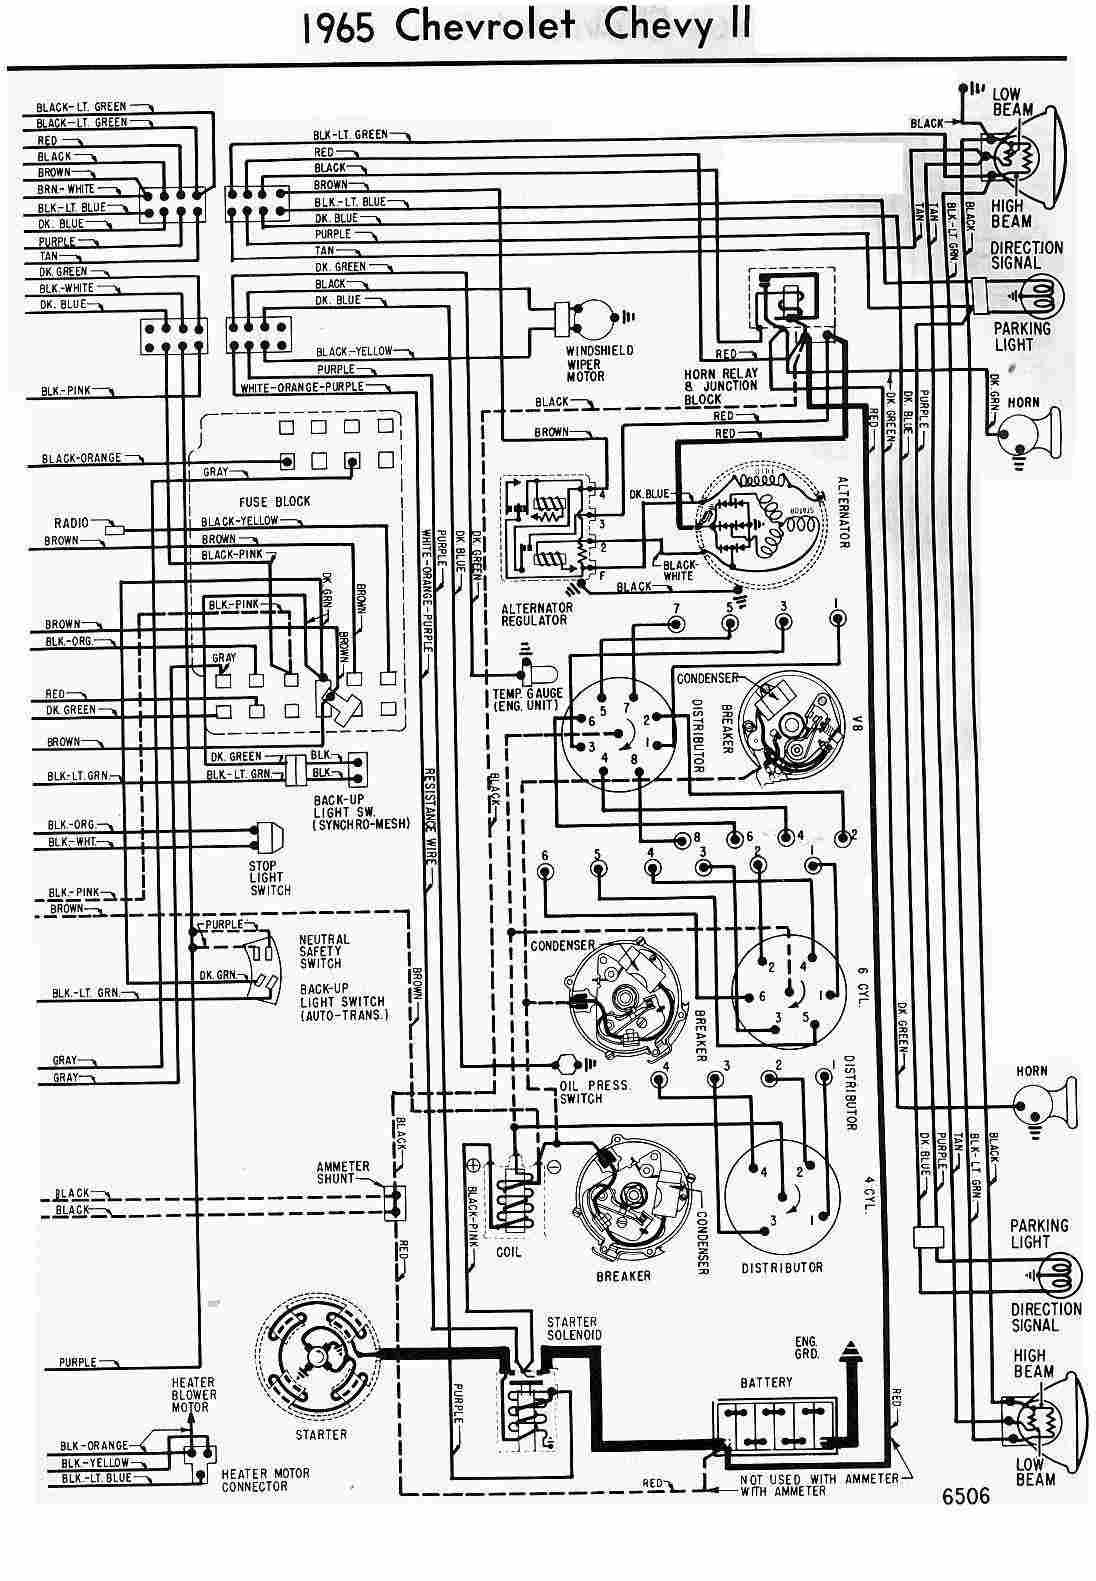 1965 Corvair Wiring Diagram Online 65 Falcon Complete Schematic Library